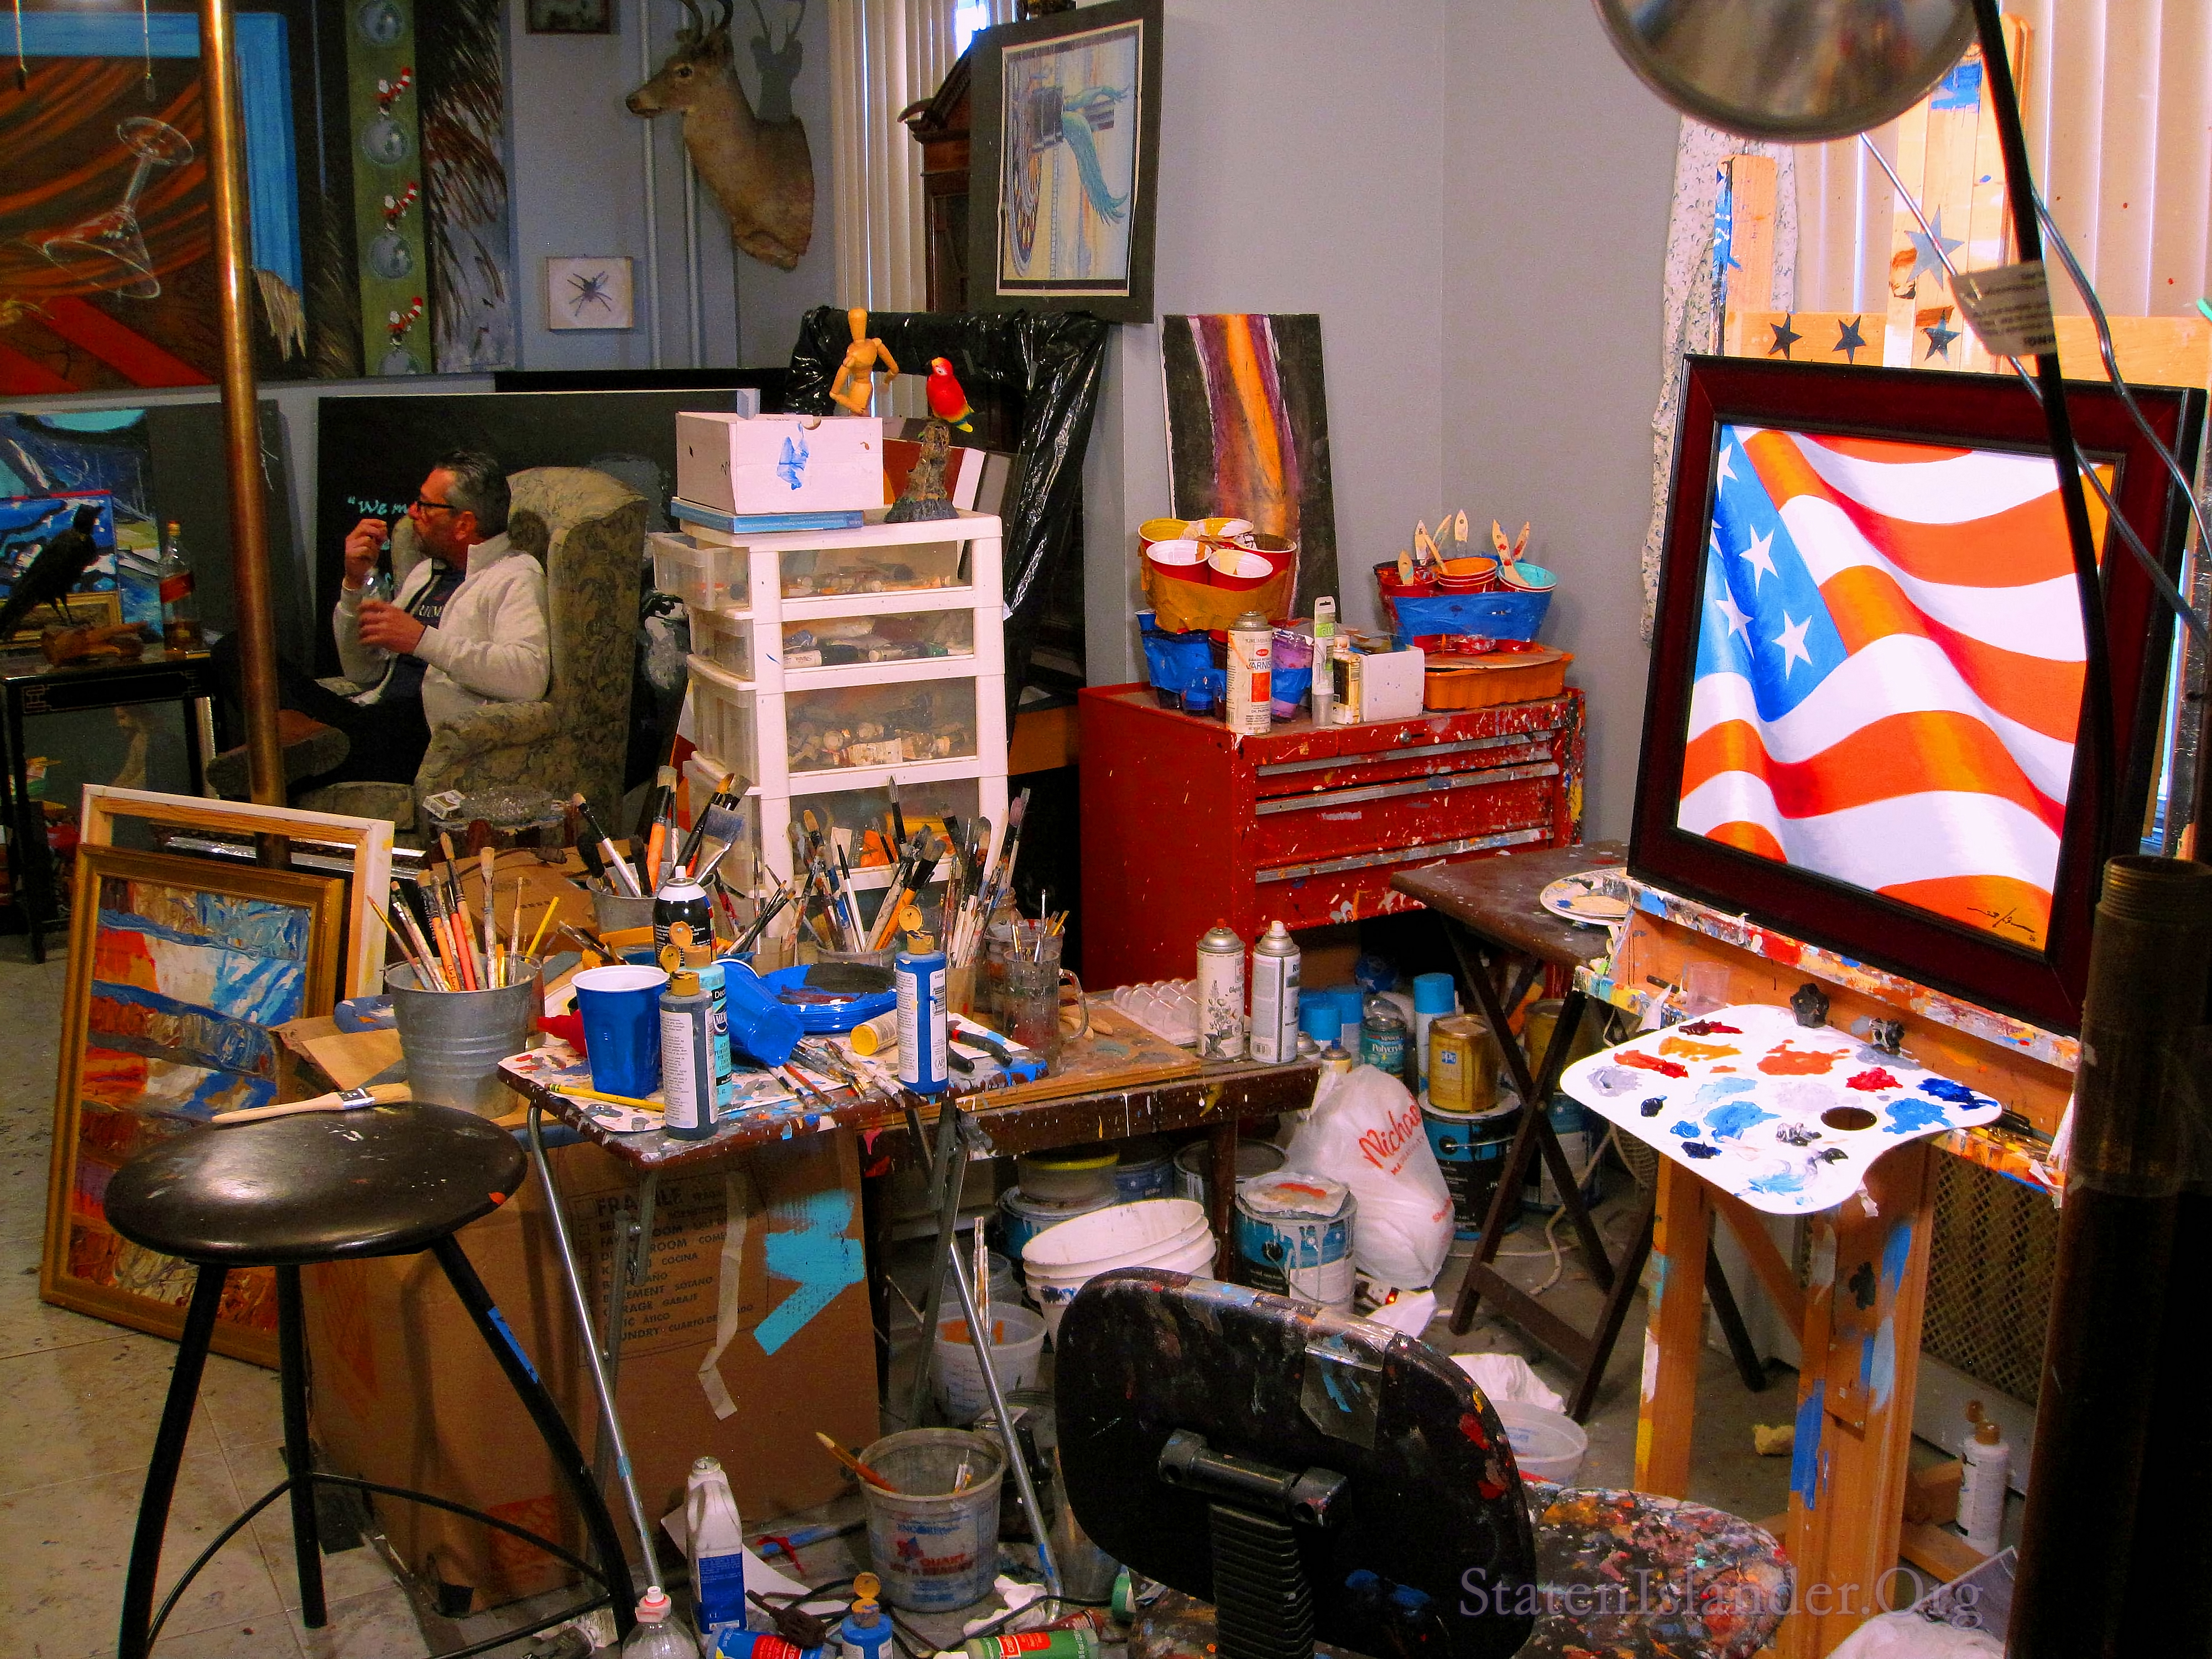 Scott's Work Area. A Commissioned Painting Presently Underway.